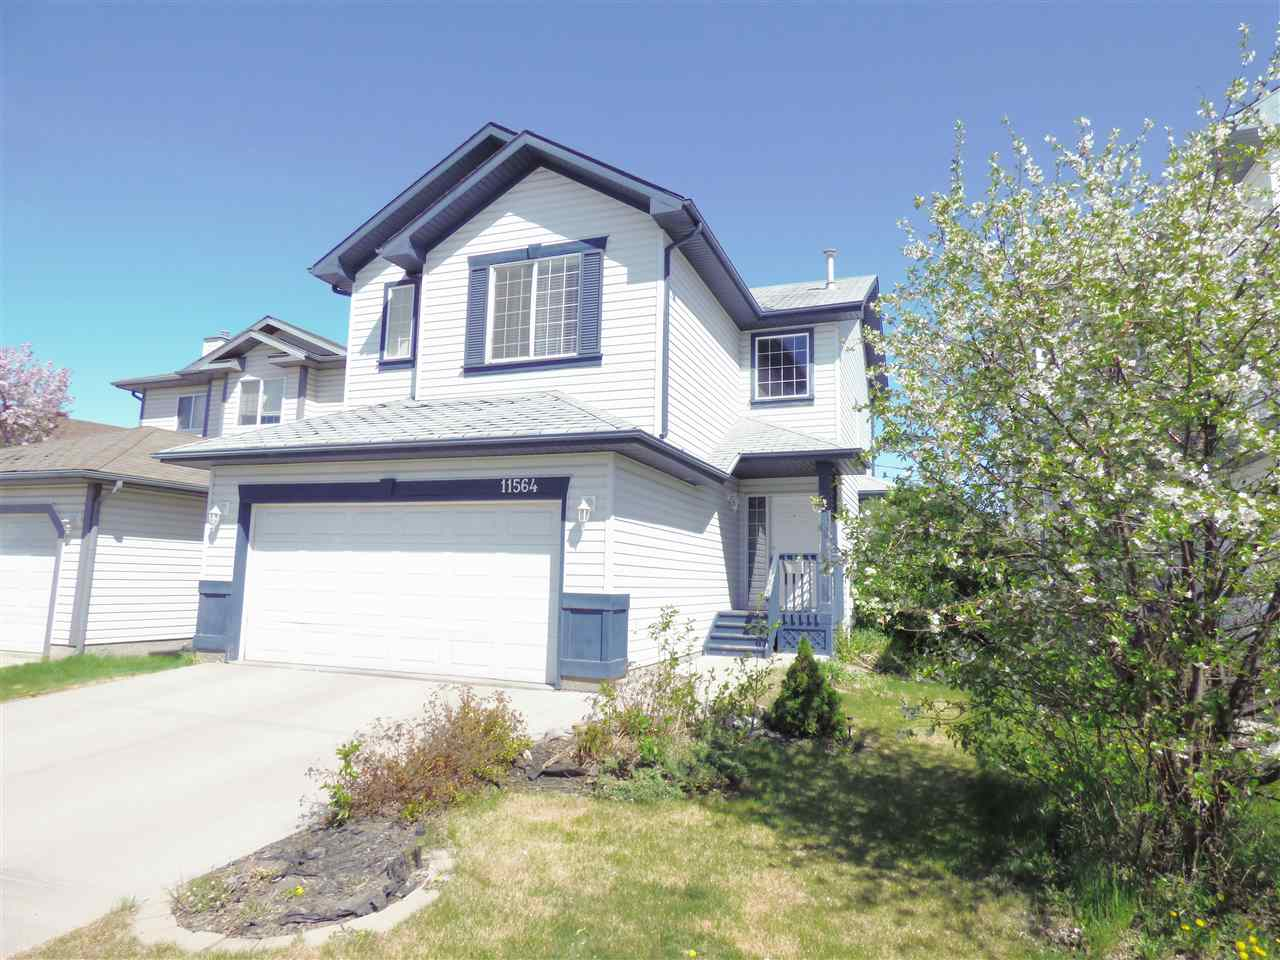 STYLE & FUNCTIONALITY IN CONCERT! This IMMACULATE family-friendly home in Canossa comes with nothing to do but MOVE IN & ENJOY! Upon entering you'll be greeted by a grand entryway, offering an excellent first impression. As you proceed, you'll continue to be impressed by the open-concept and spacious living area, modern kitchen and bright dining room. The main floor features RICH HARDWOOD & STUNNING TILE. Upstairs are 3 large bedrooms, including a master w/ WALK-IN CLOSET, VAULTED CEILINGS & 3-PIECE ENSUITE! You're also going to love the UPSTAIRS LAUNDRY ROOM! The basement is FULLY FINISHED & has a large family room, full bathroom, 9-foot-ceilings, storage & a large bedroom. Others great features include 2 FIREPLACES, BEAUTIFULLY LANDSCAPED/TREED YARD, LARGE DECK, DOUBLE ATTACHED GARAGE and so much more! The home is been lovingly maintained and upgraded over the years. This home offers quick access to SCHOOLS, SHOPPING, RESTAURANTS, PARKS, TRANSPORTATION & MORE! Act fast & ENJOY SPRING IN YOUR NEW HOME!